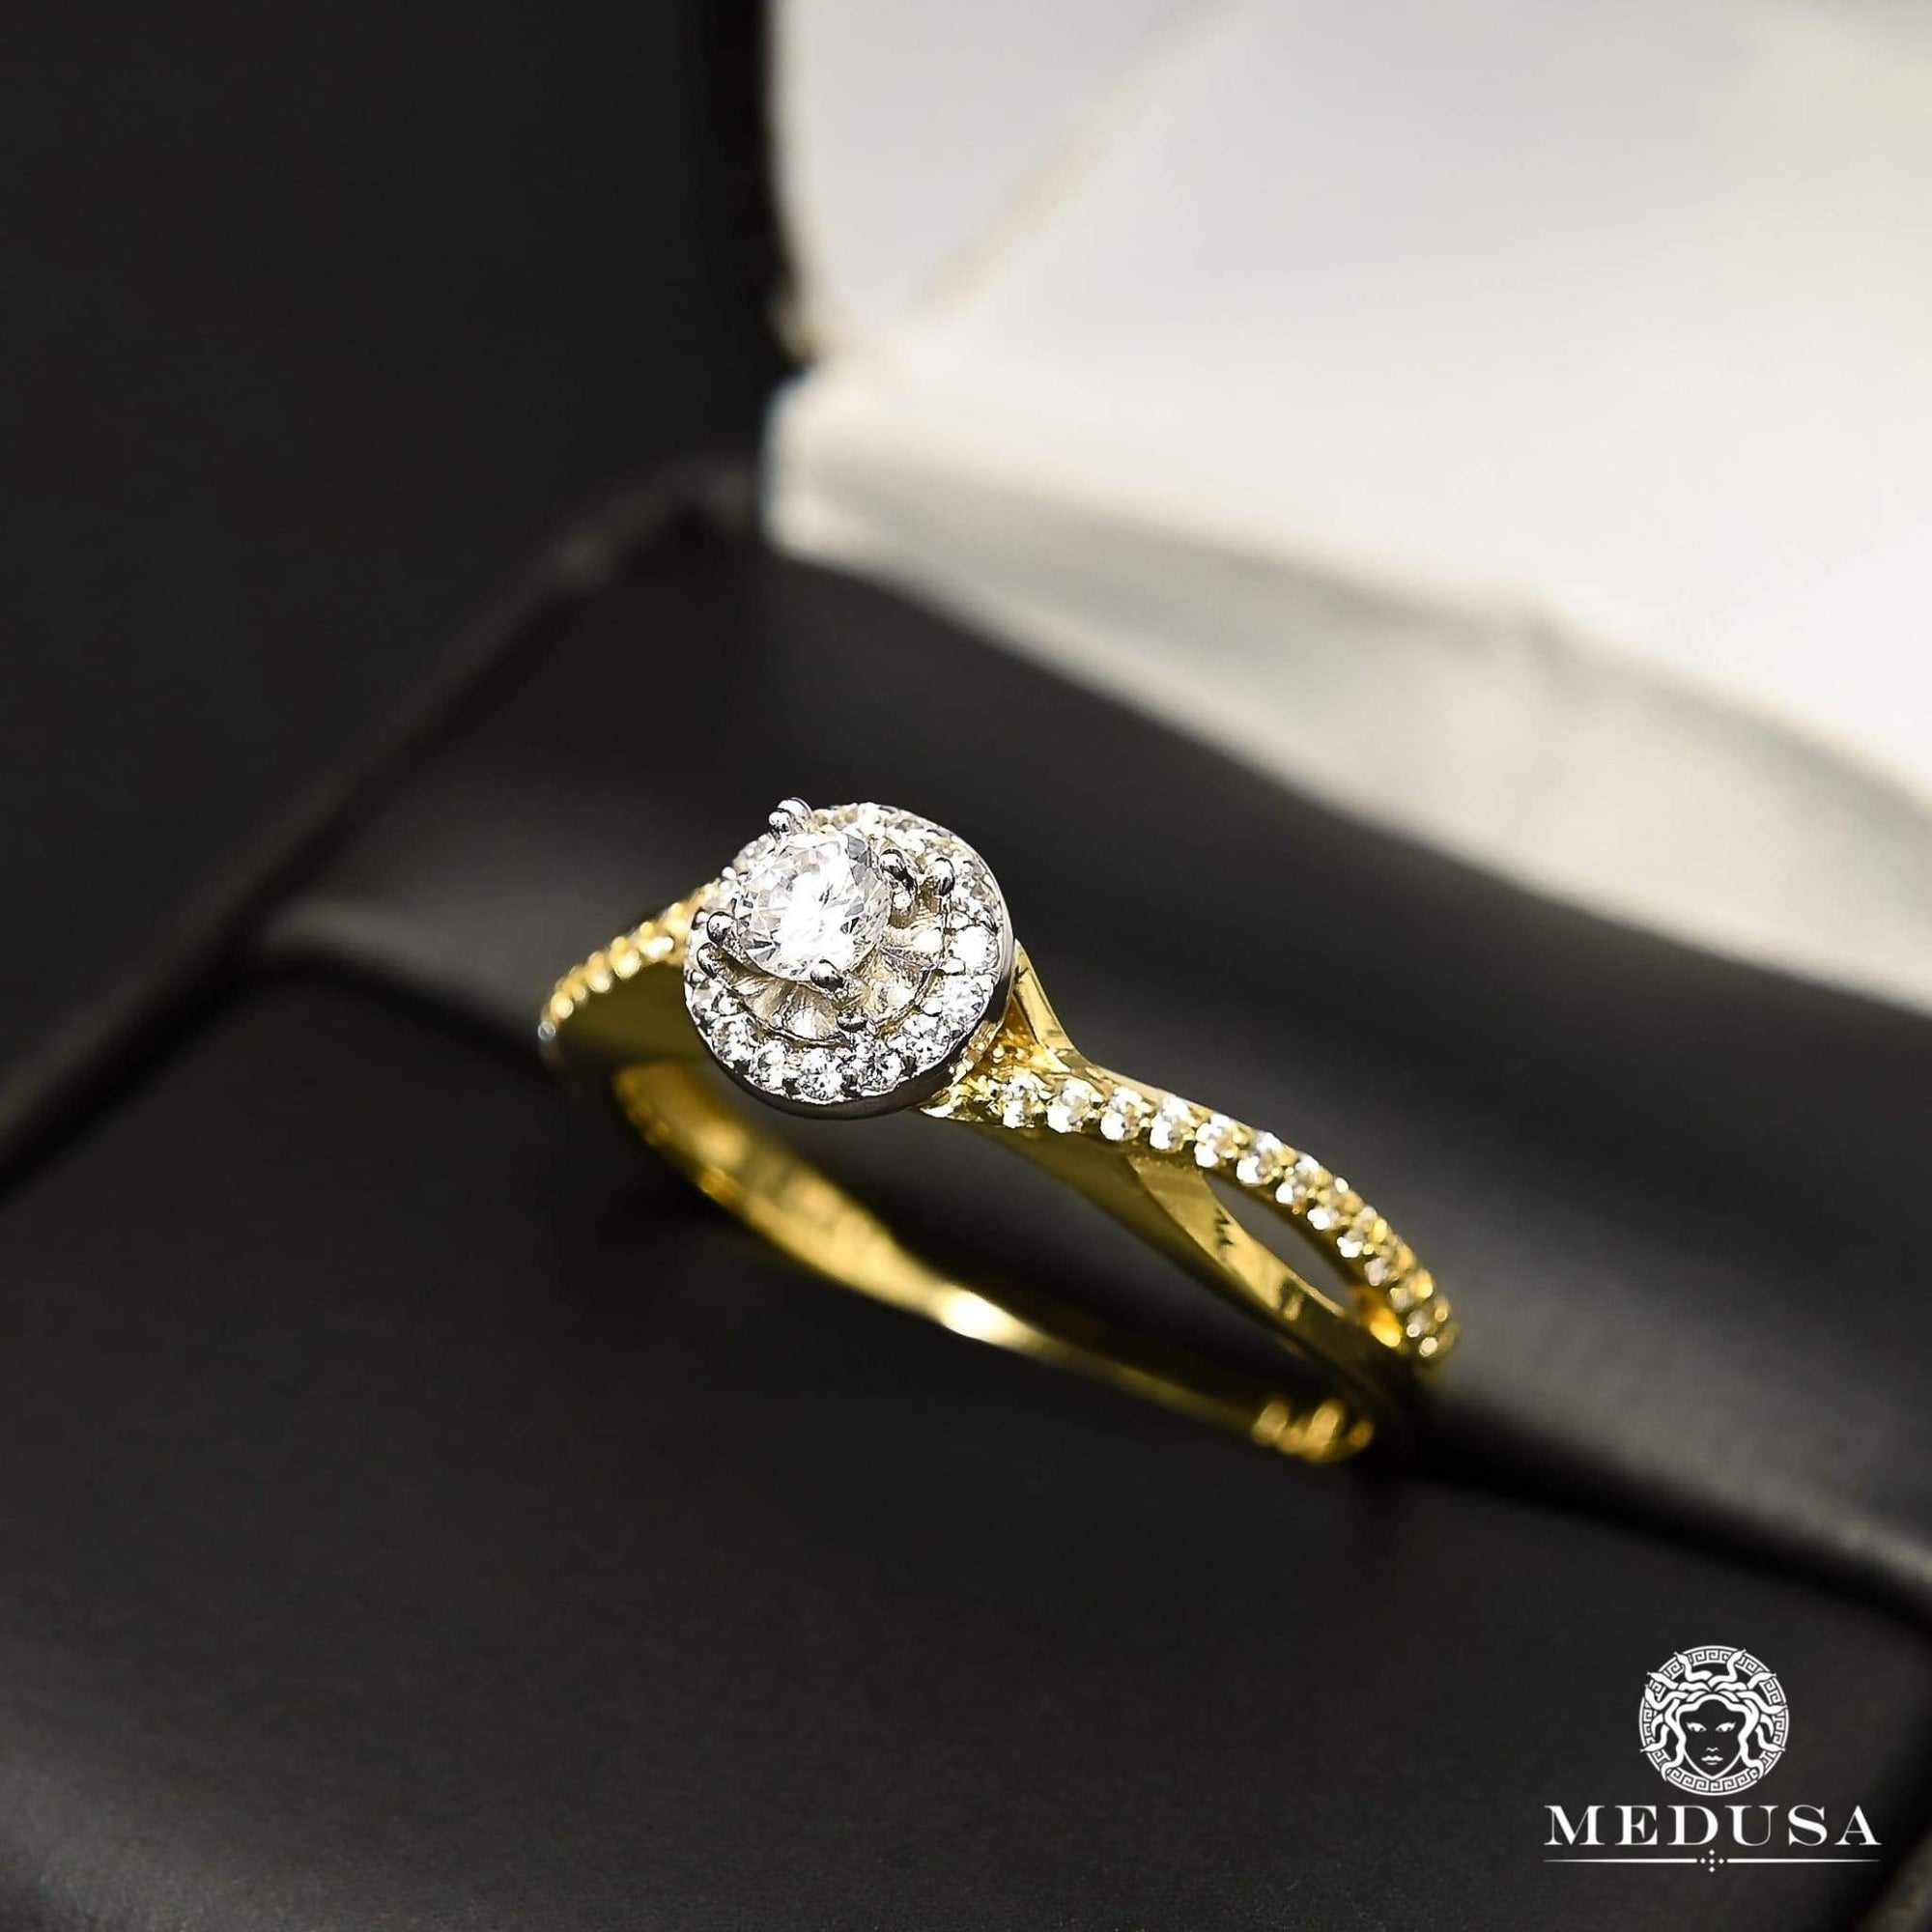 Bague à Diamants en Or 14K | Bague Fiançaille Solitaire F26 - MA0876 Or Jaune